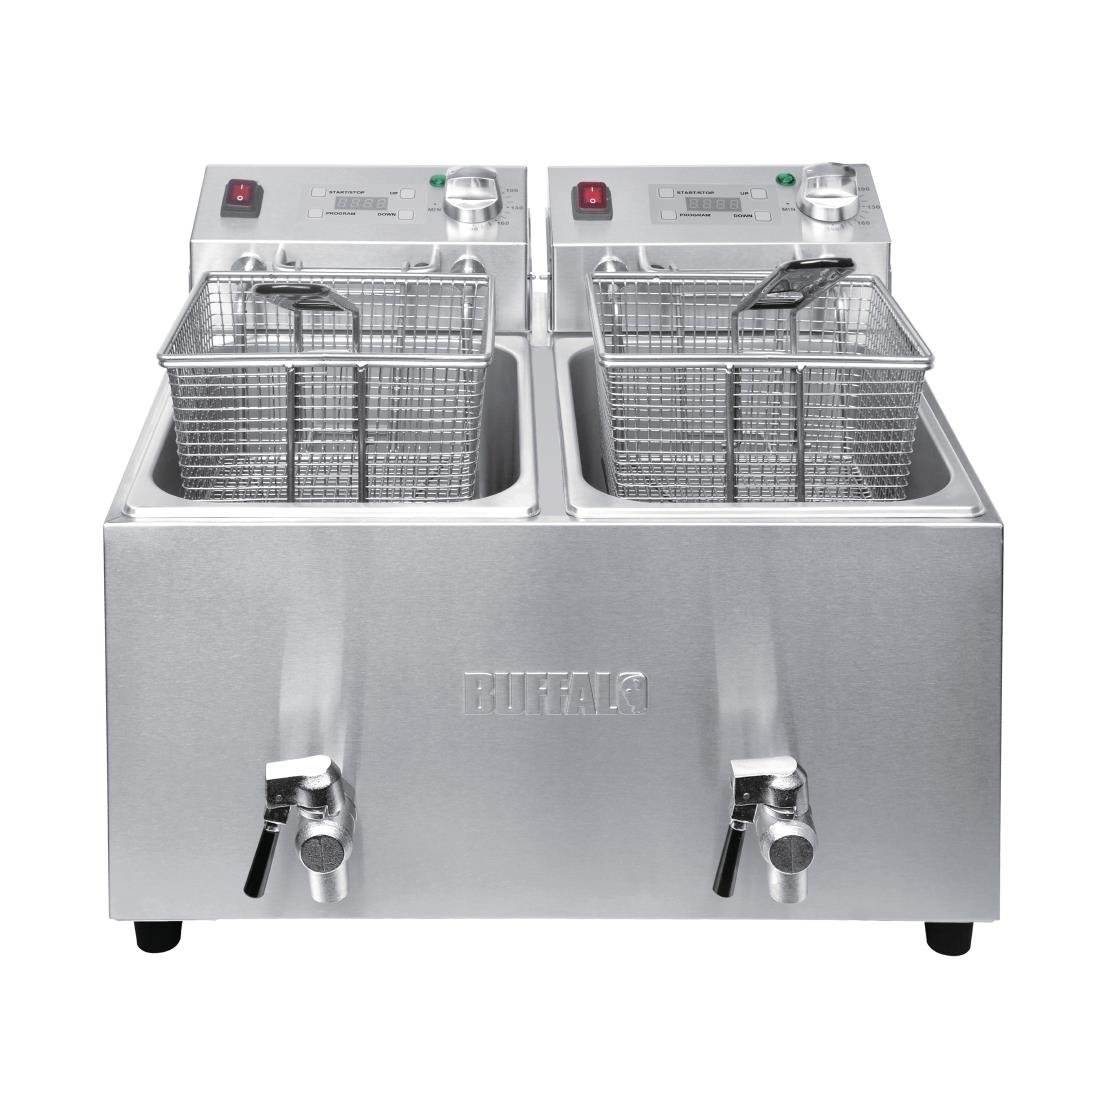 Buffalo Double Fryer - 2x8Ltr 2.9kW with Timer